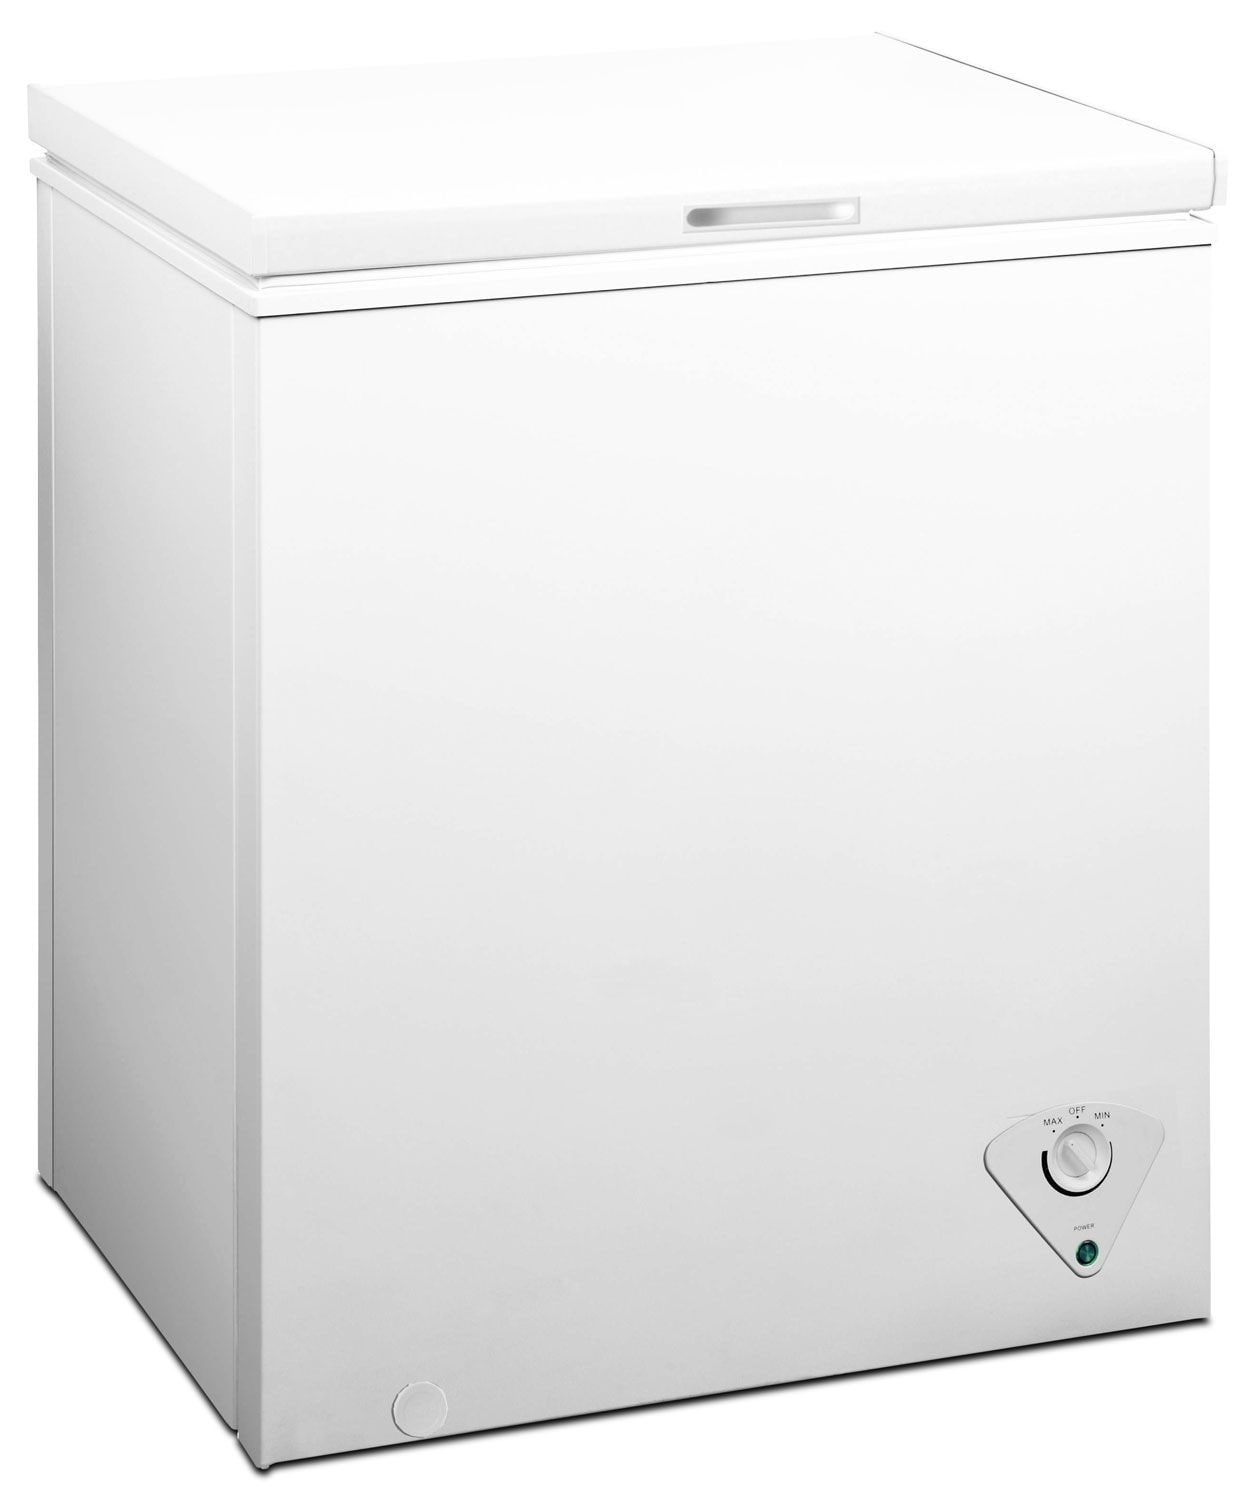 Midea 5.0 Cu. Ft. Chest Freezer - White